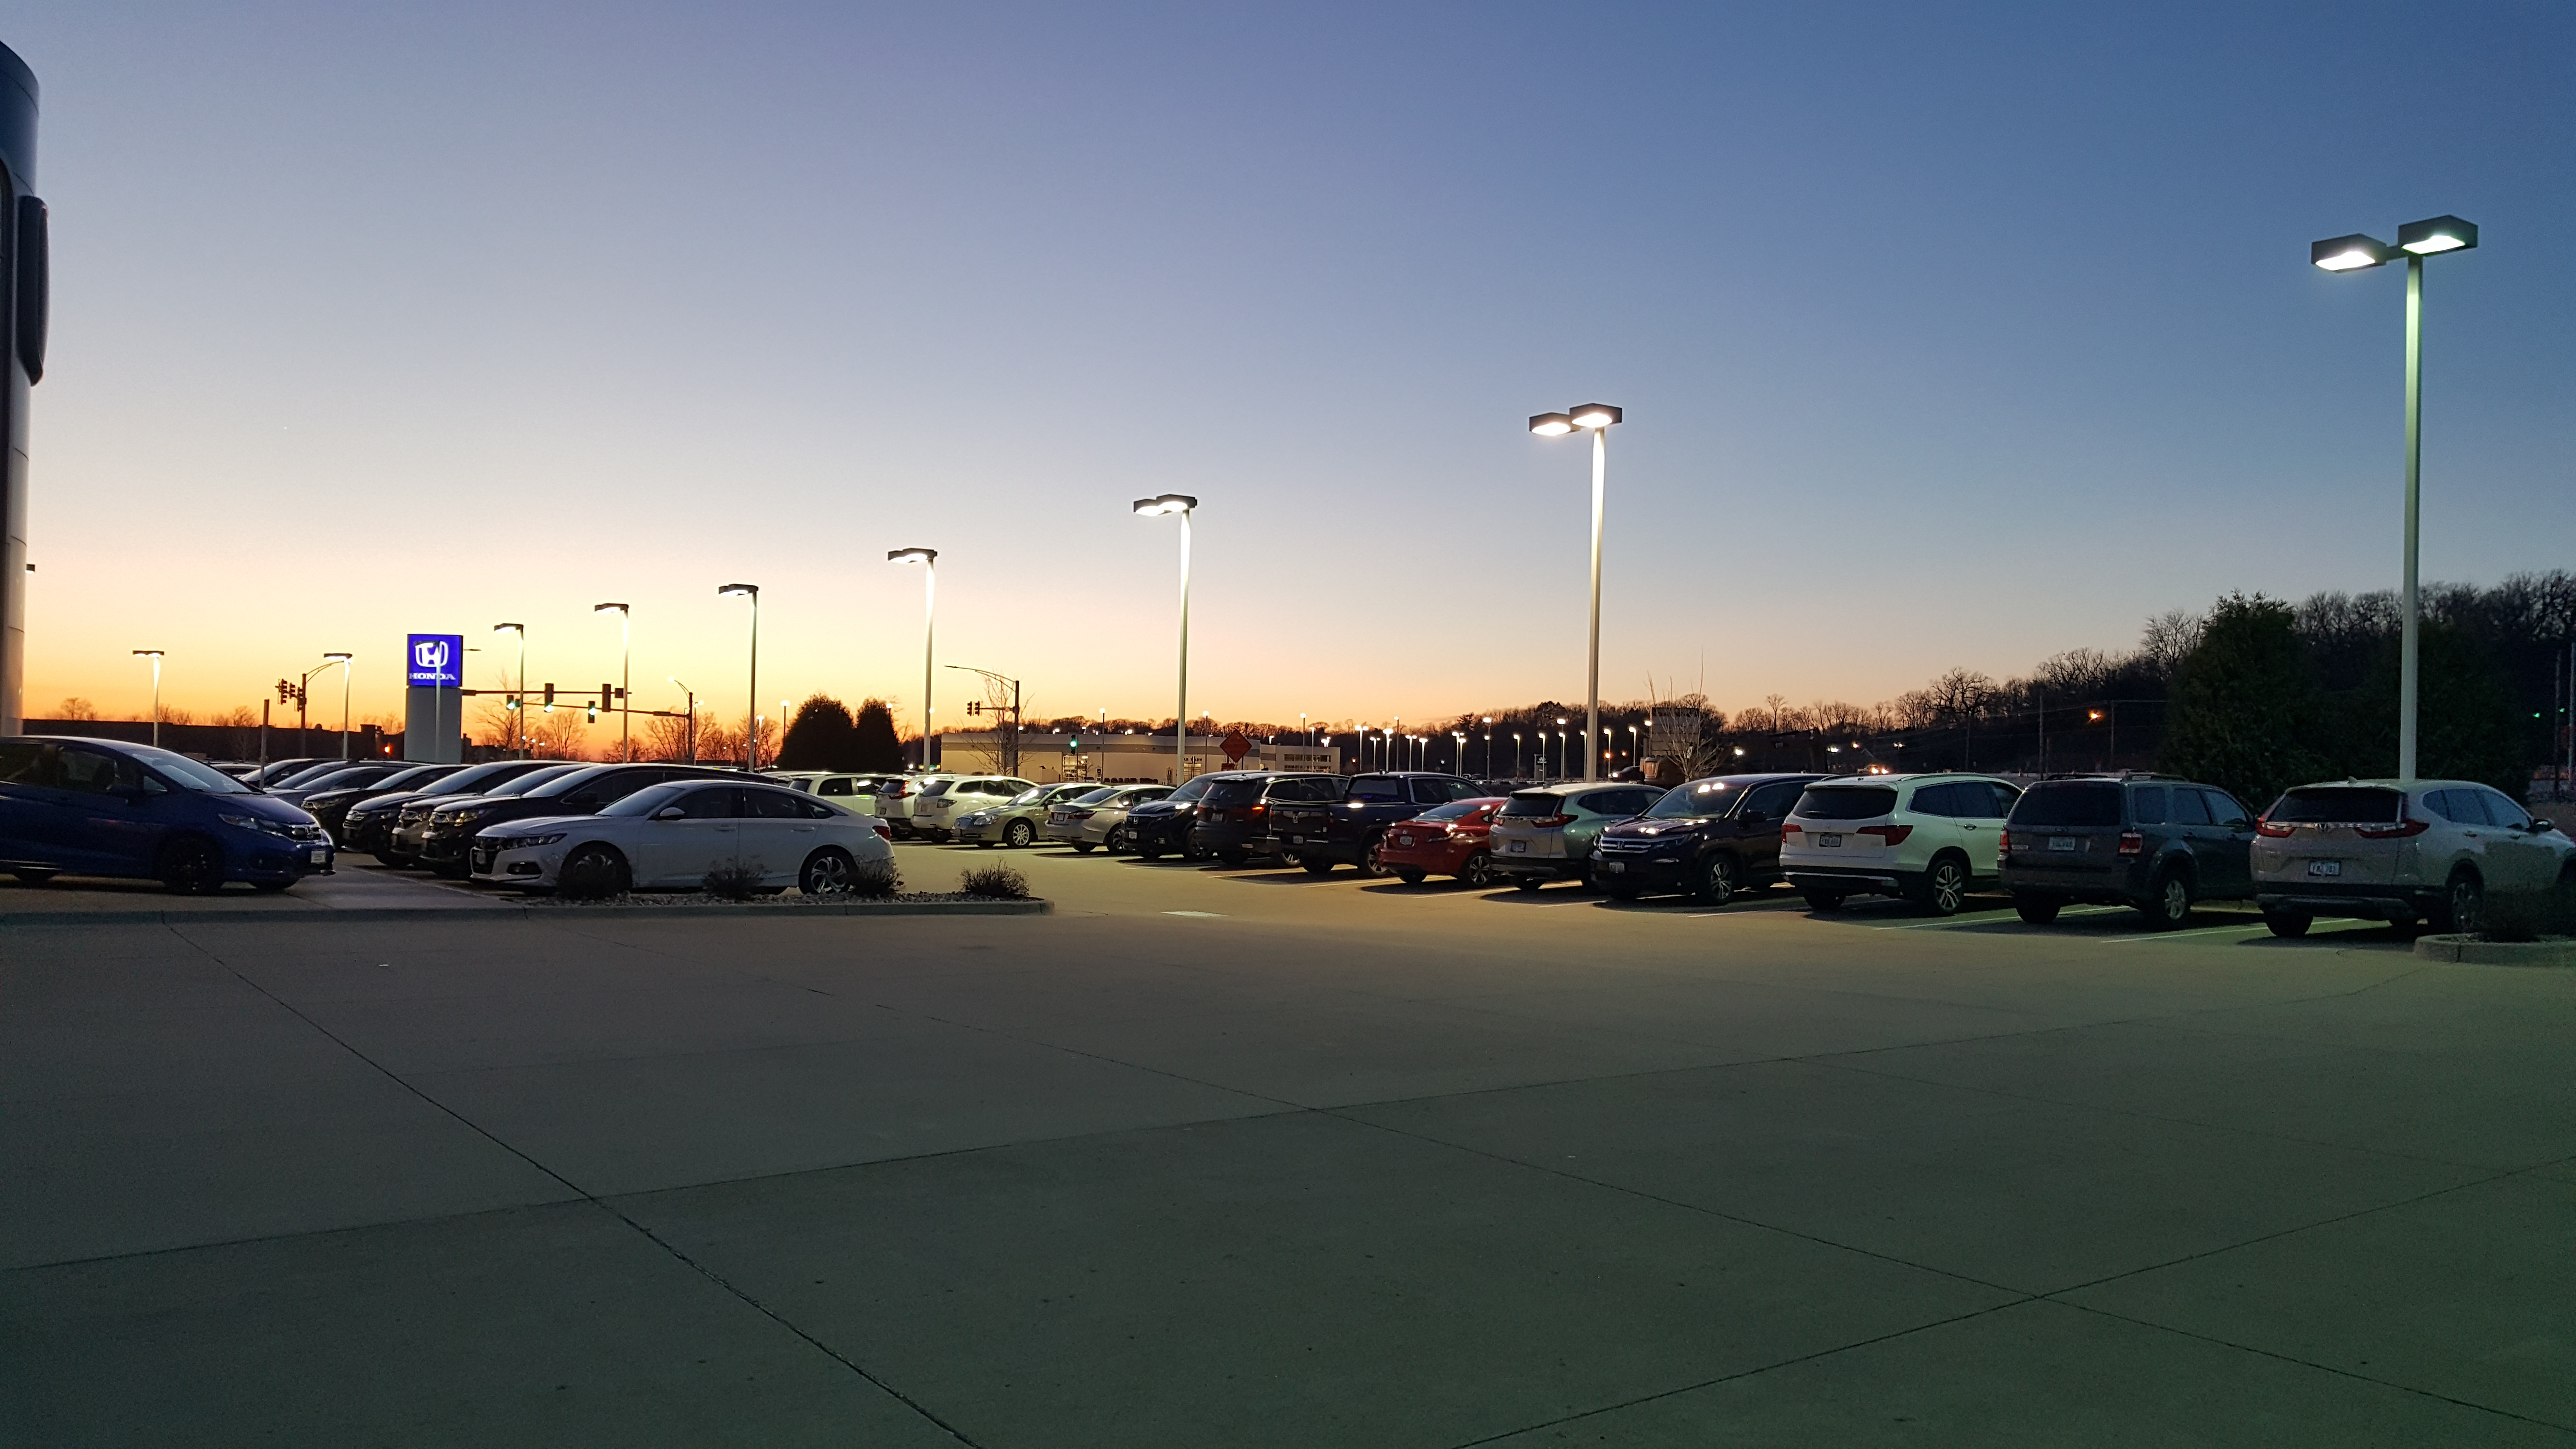 Captivating Zimmerman Honda Is Ready To Assist You And All Colona, Illinois Drivers  Today. We Are A Top Honda Dealer Serving Colona, IL. Colona Is A City Of  About 5,000 ...